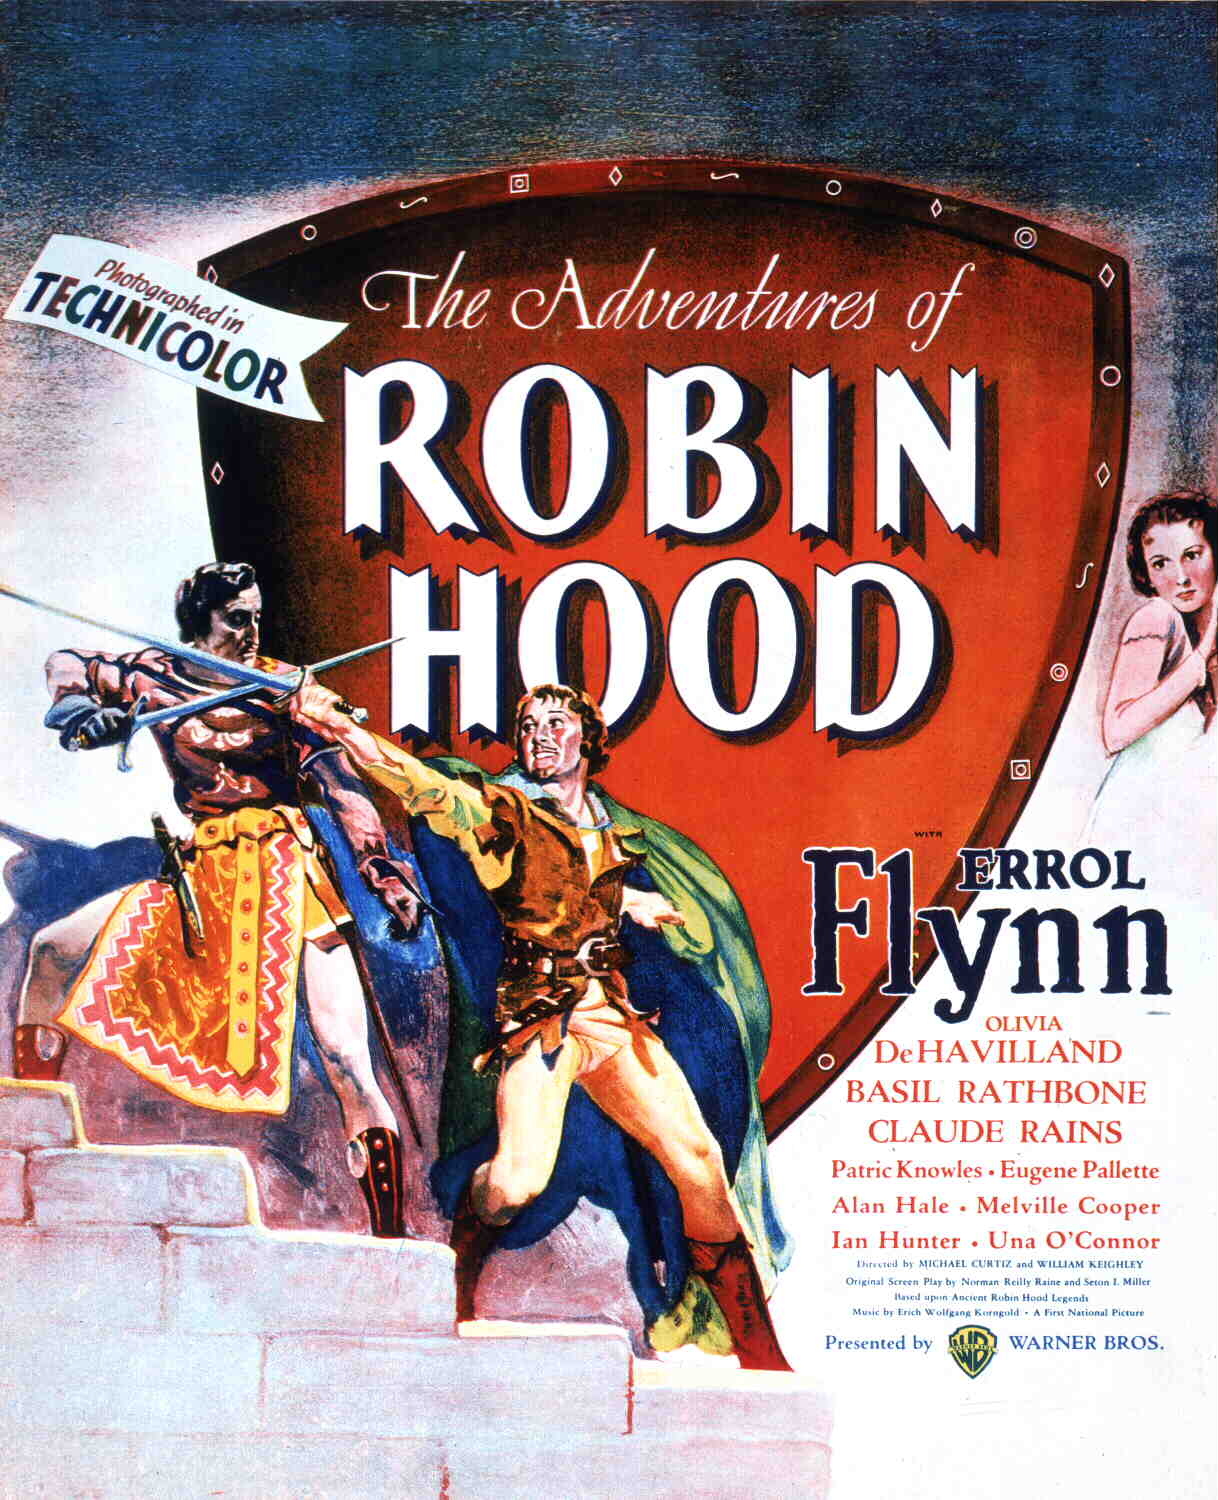 TCM's The Adventures of Robin Hood page: